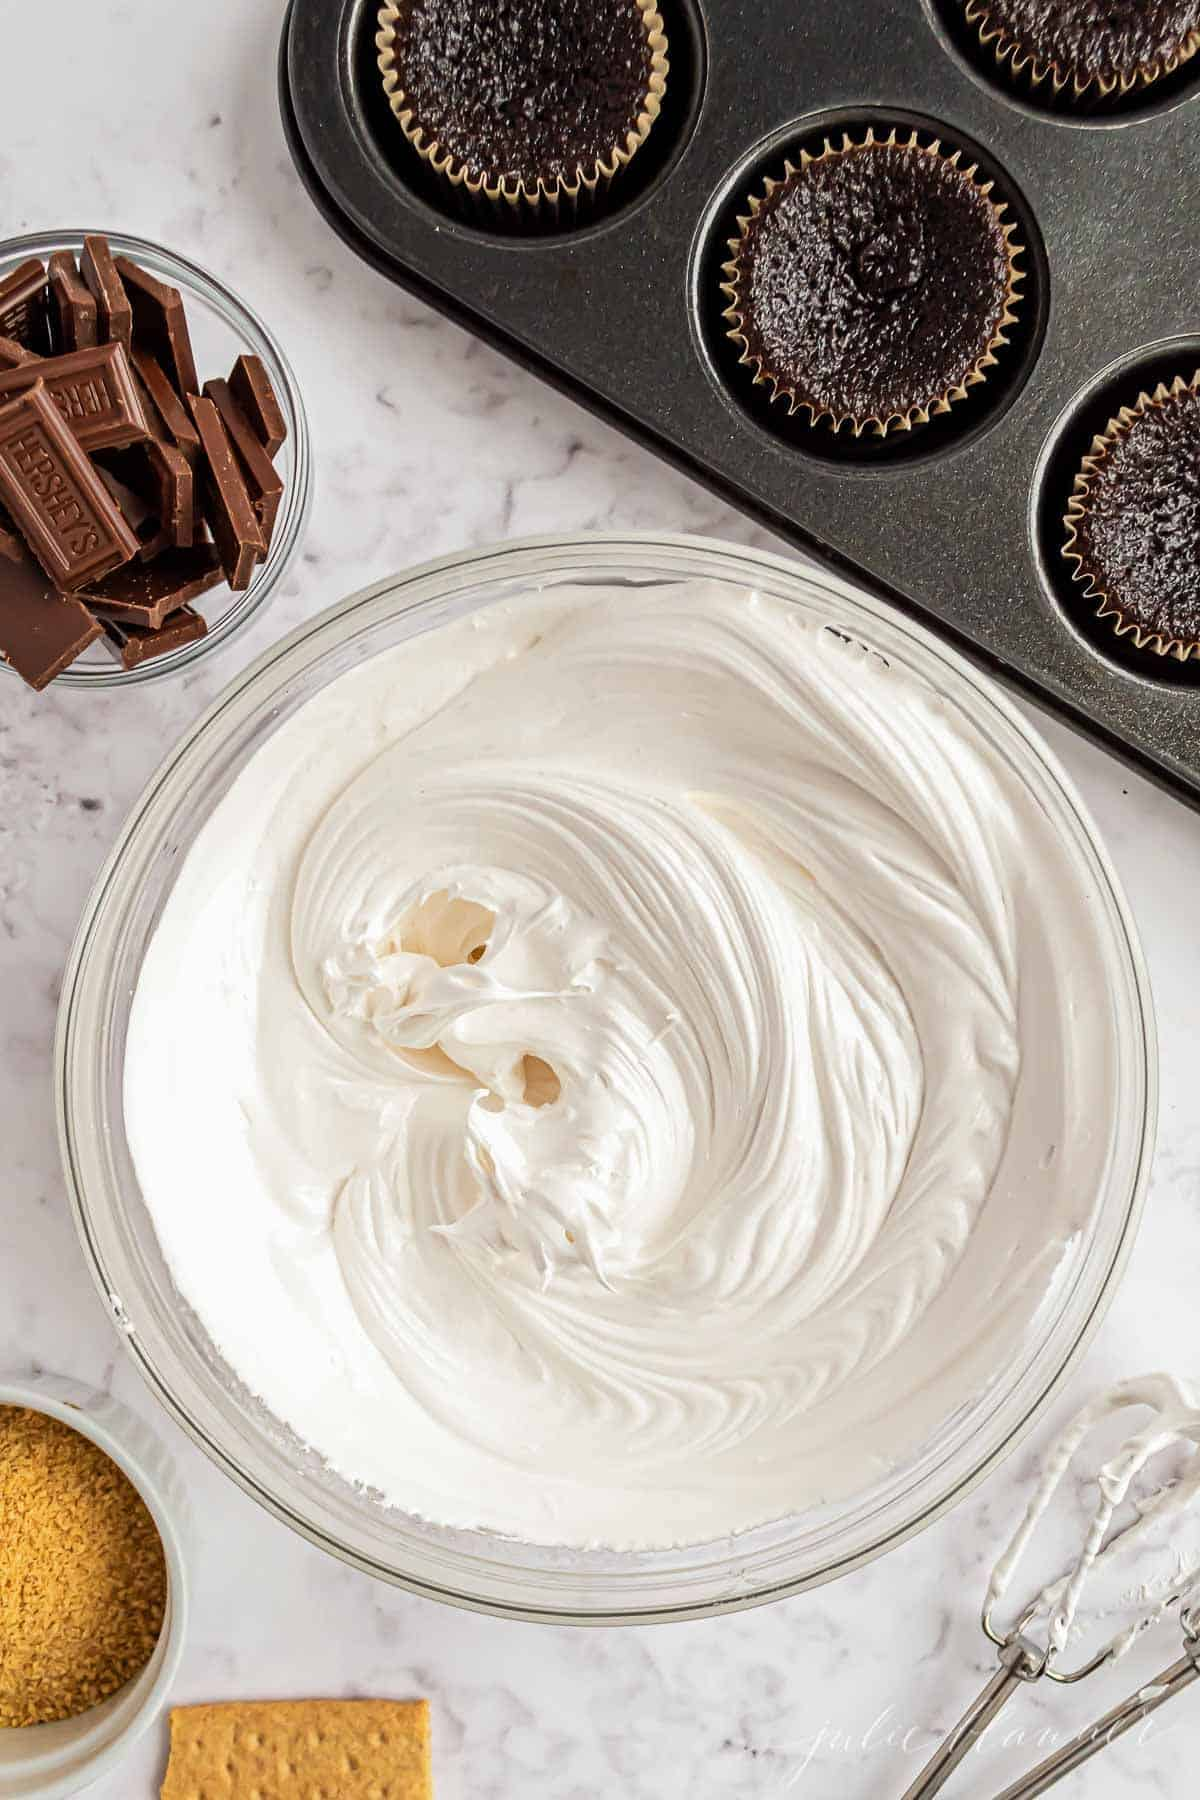 A clear glass bowl full of marshmallow icing, near chocolate cupcakes.